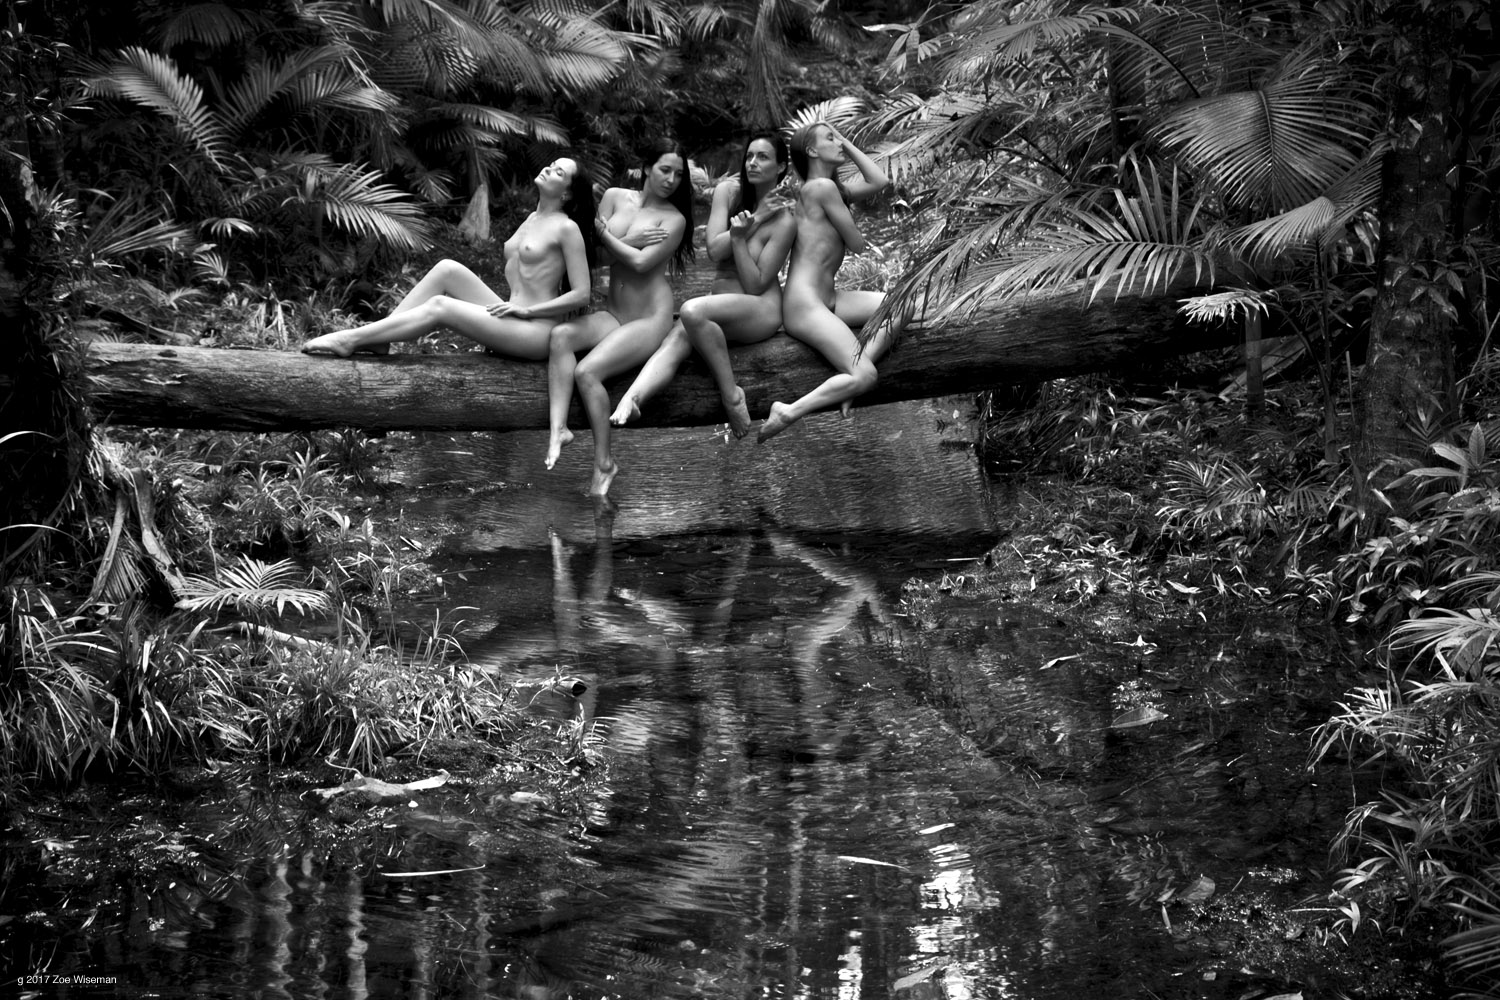 © 2017 Zoe Wiseman - models: Anne, Cheyanne, Tara and Brooke